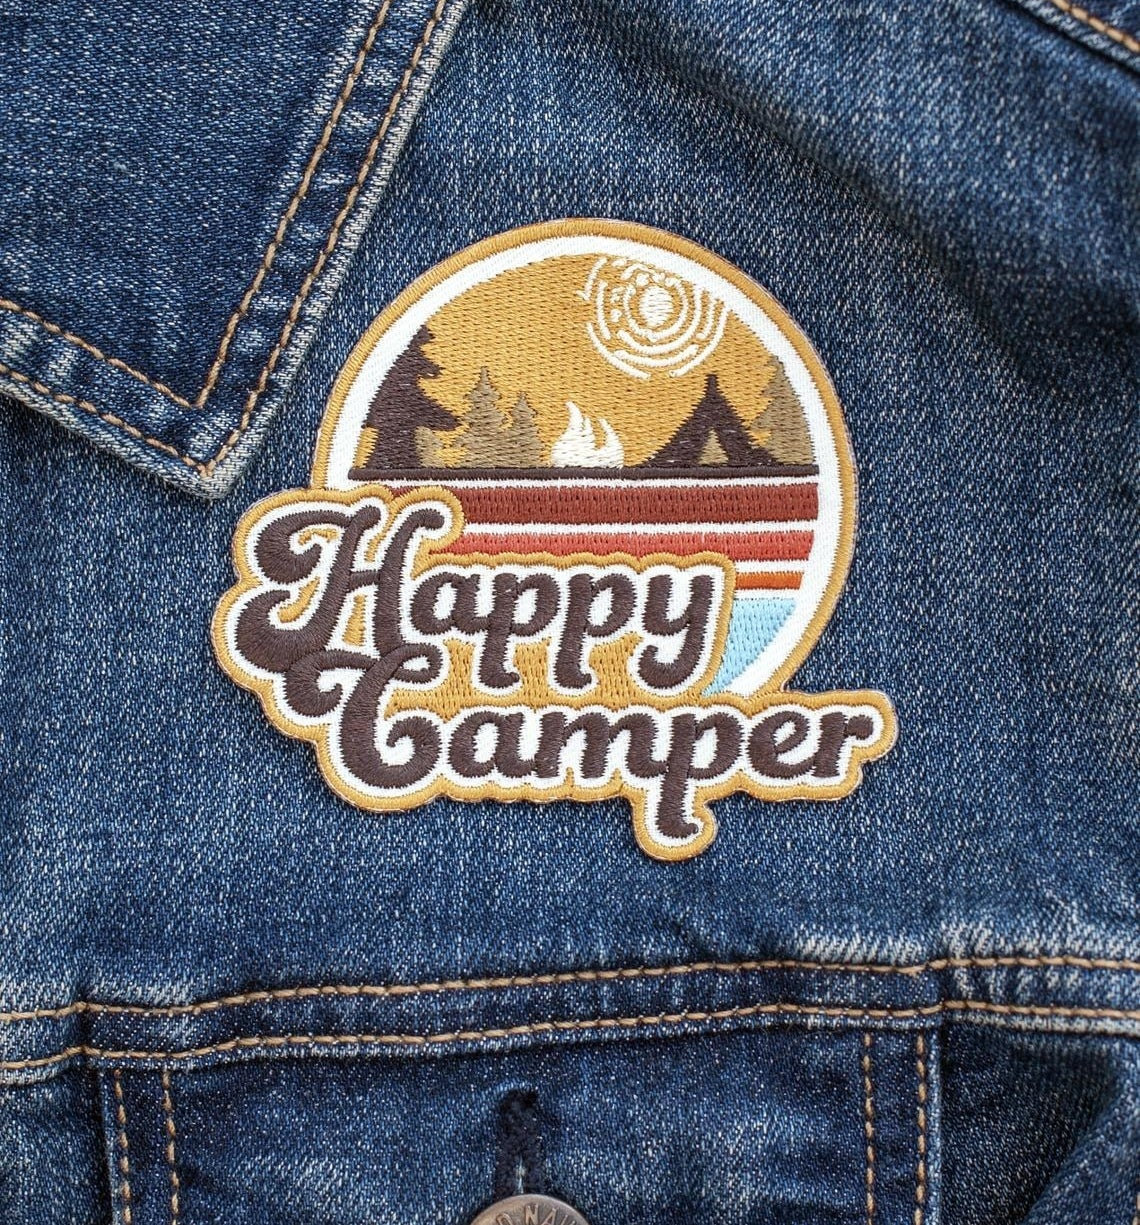 The patch on a jean jacket